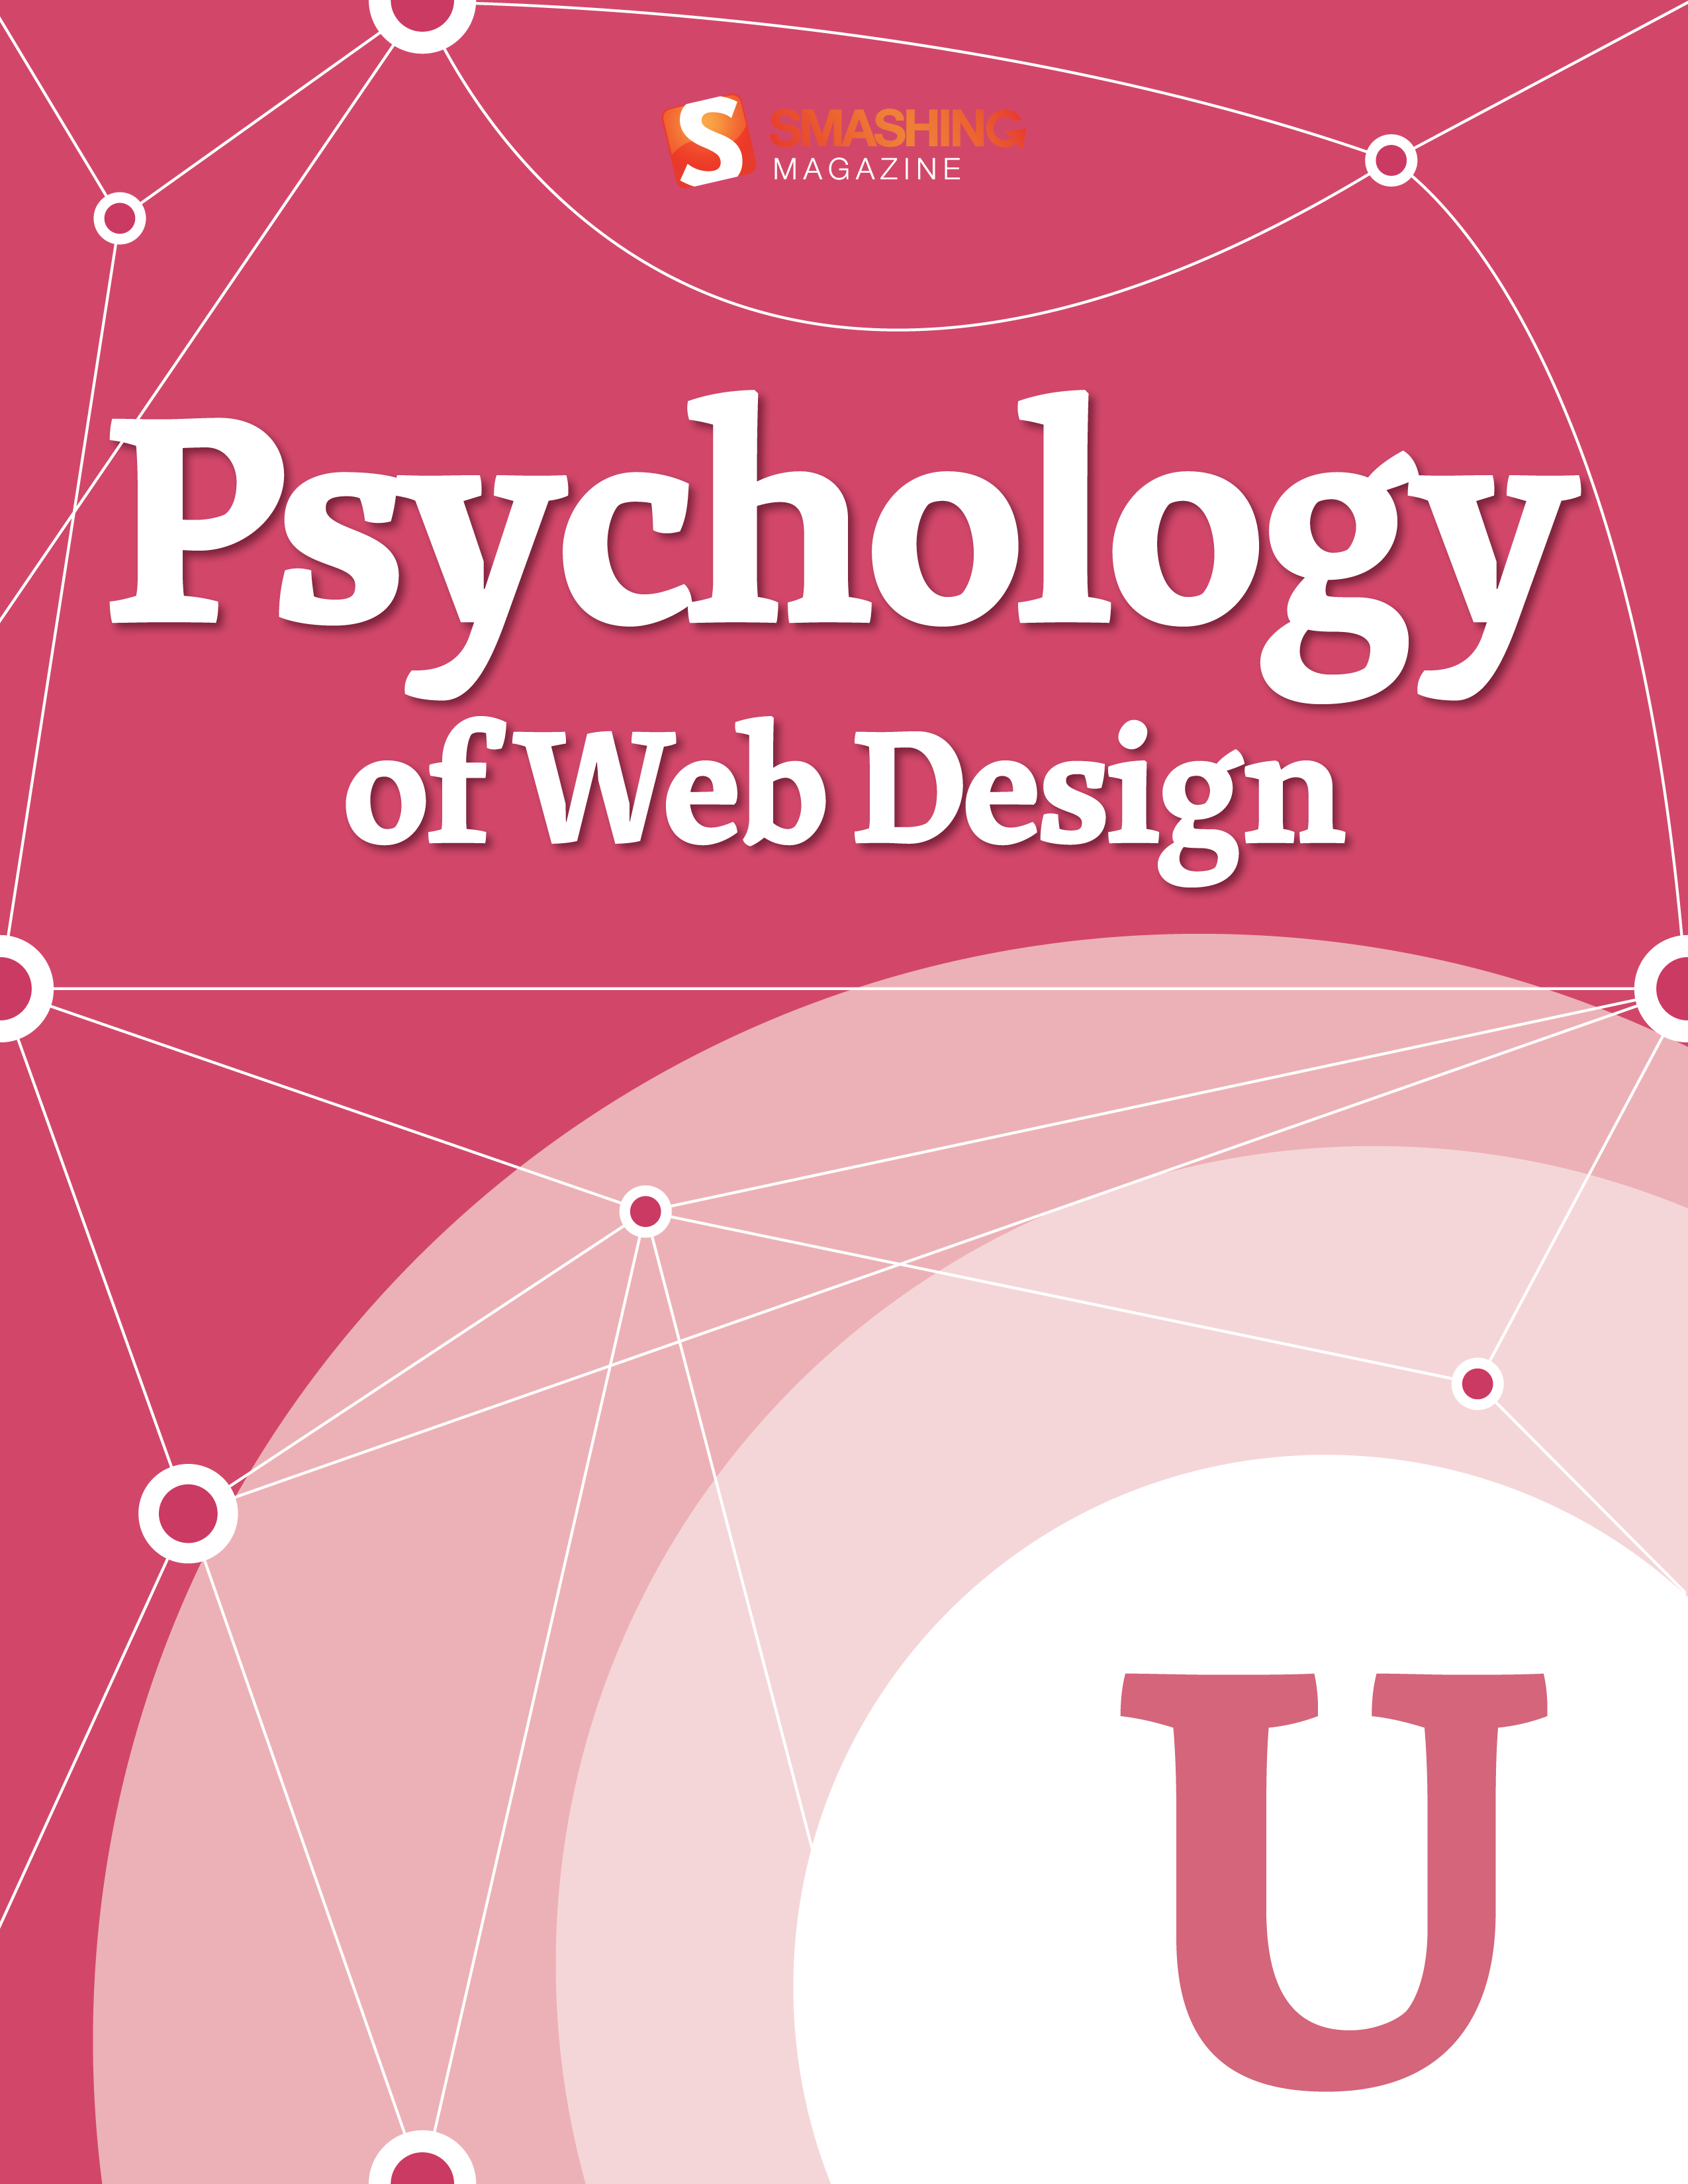 Psychology of Web Design By: Smashing Magazine